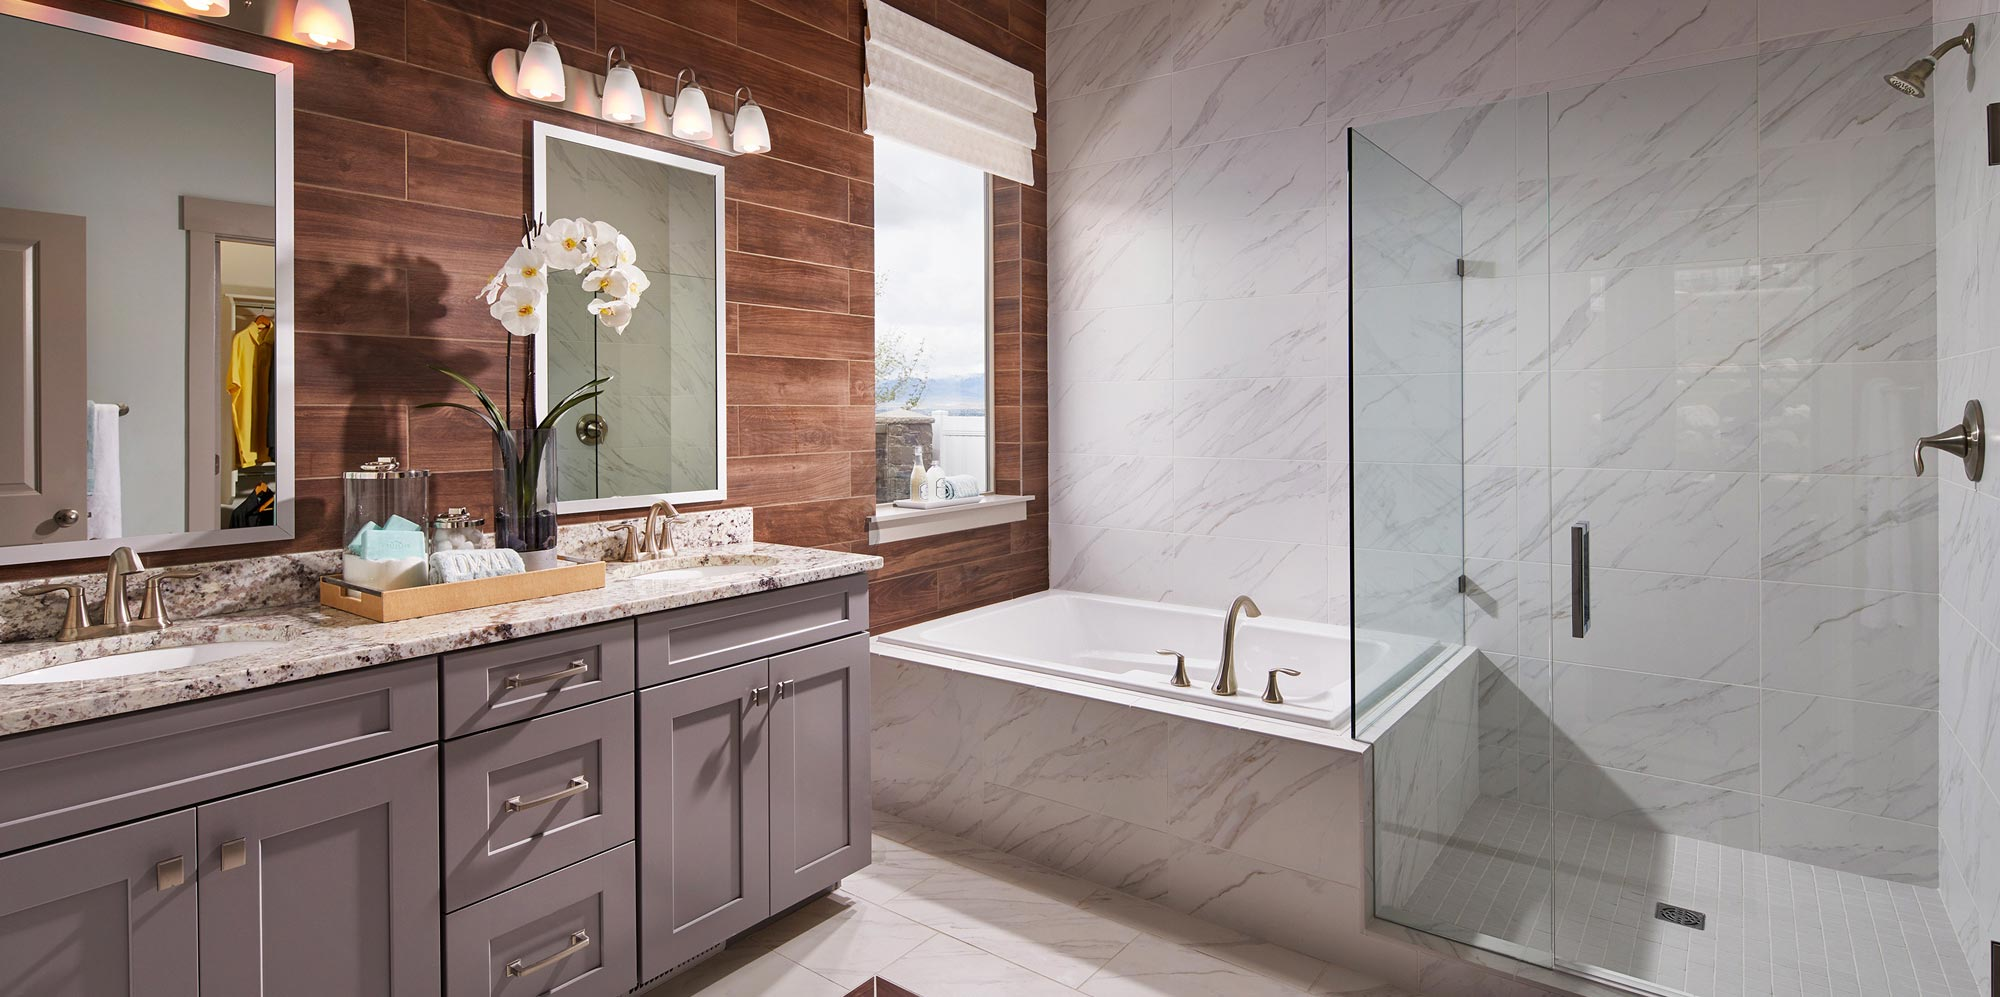 Stay A-plumb with the Latest Bathroom Trends | David Weekley Homes